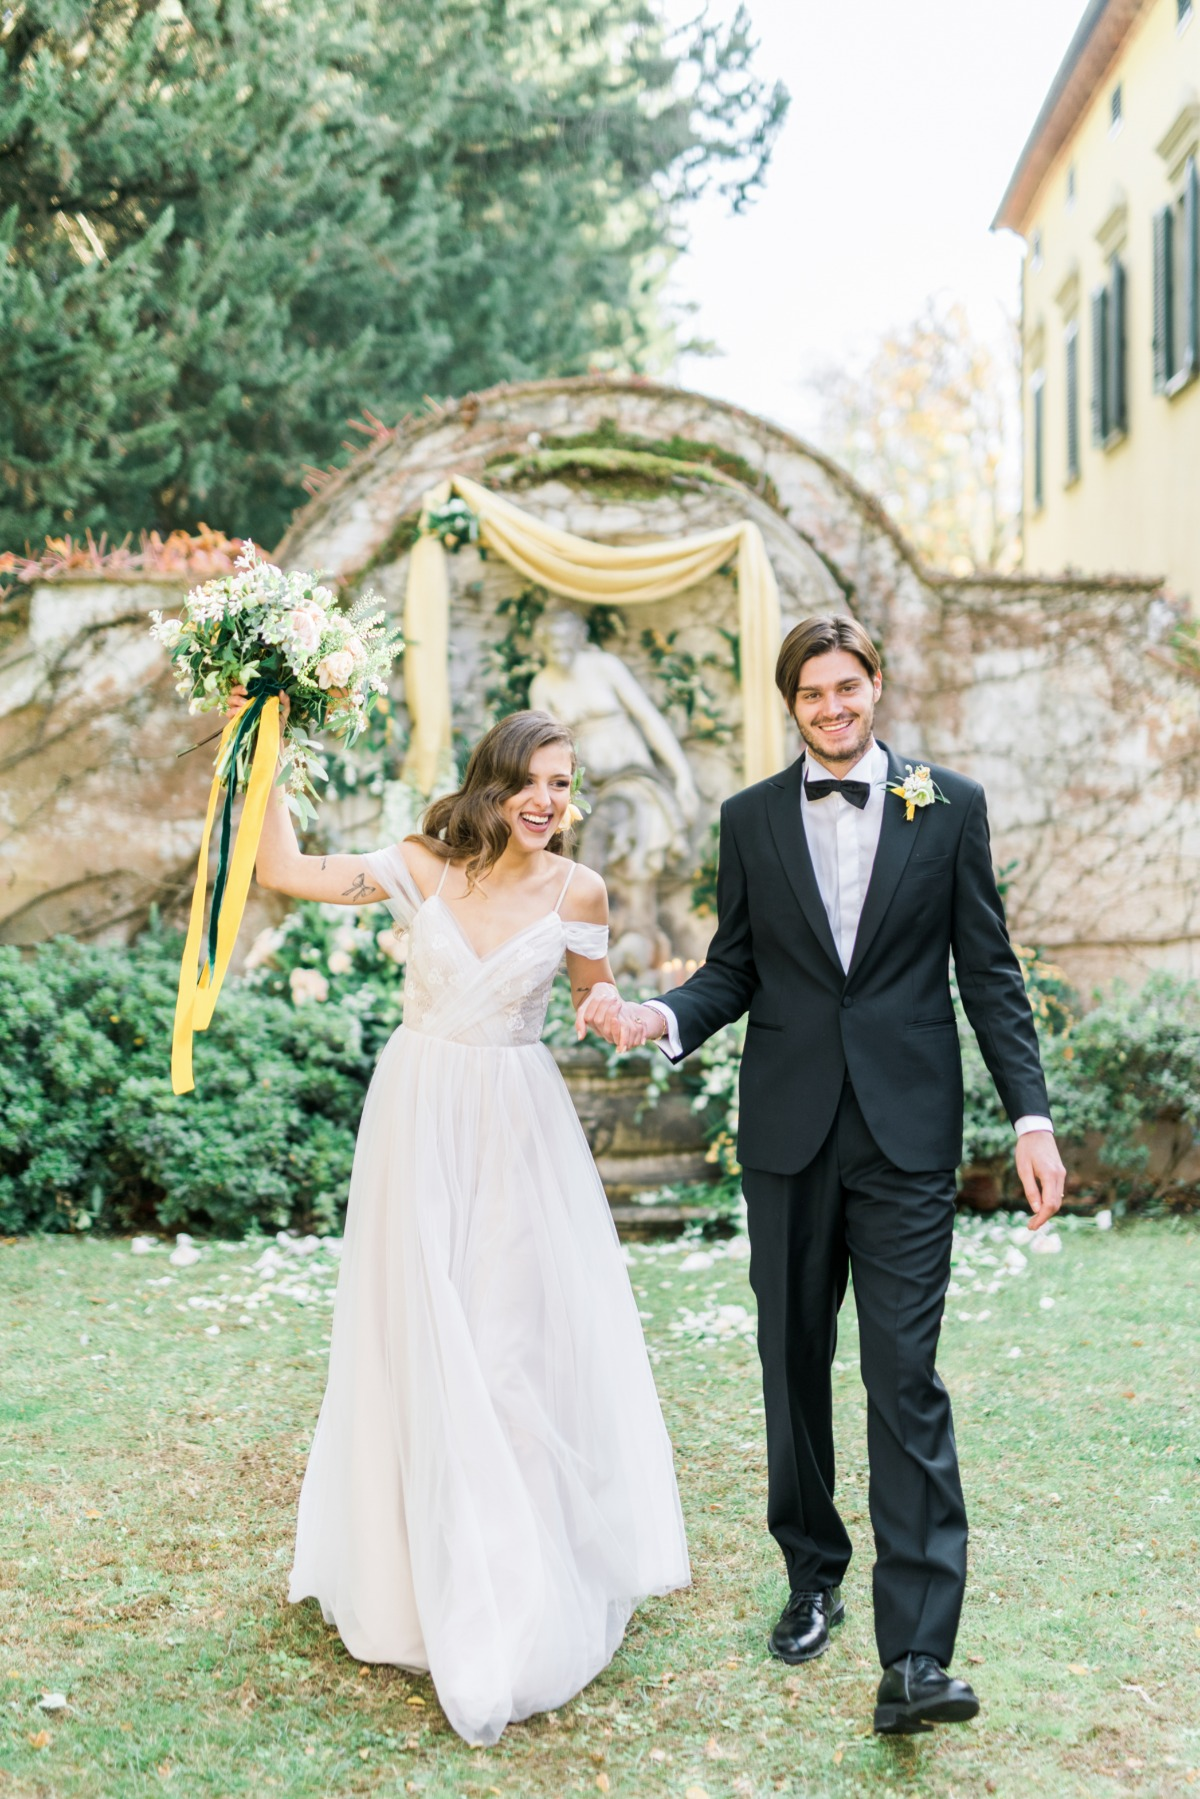 This Awe-Inspiring Shoot In Tuscany Has Us Lusting for a Fall Wedding Surrounded By Cypress Trees